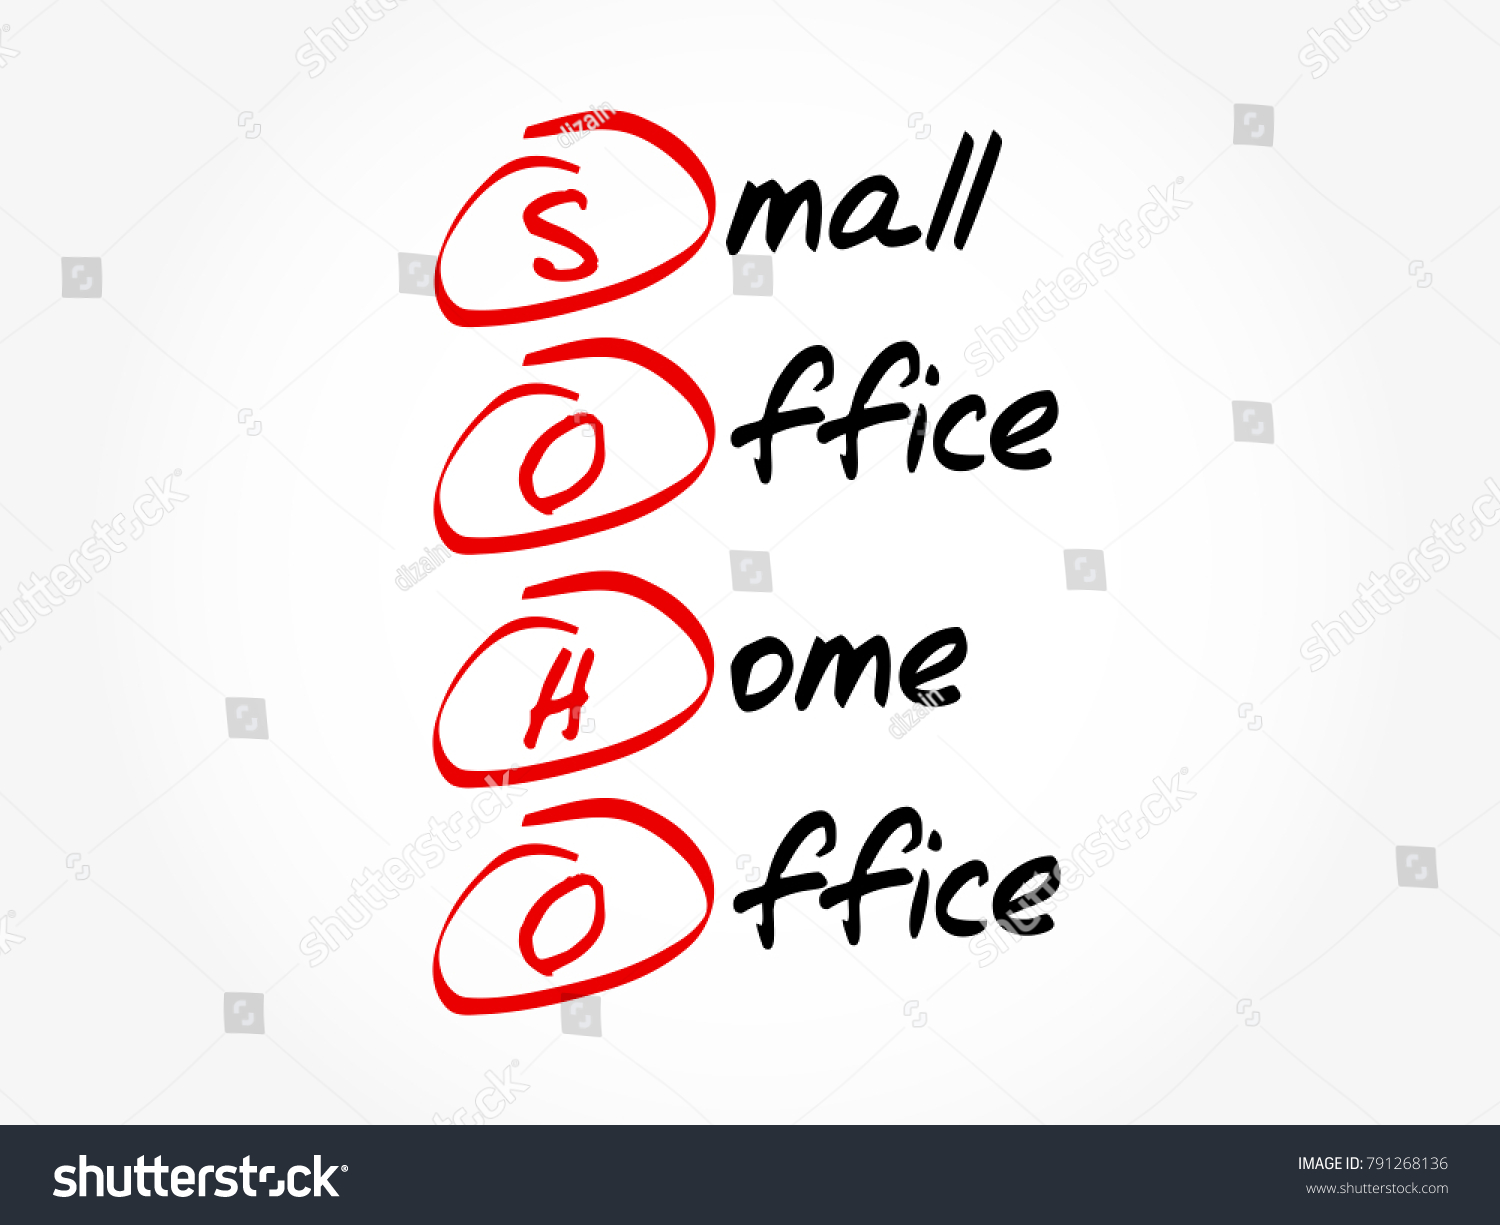 SOHO Small Office Home Office Acronym Business Stock Photo (Photo ...